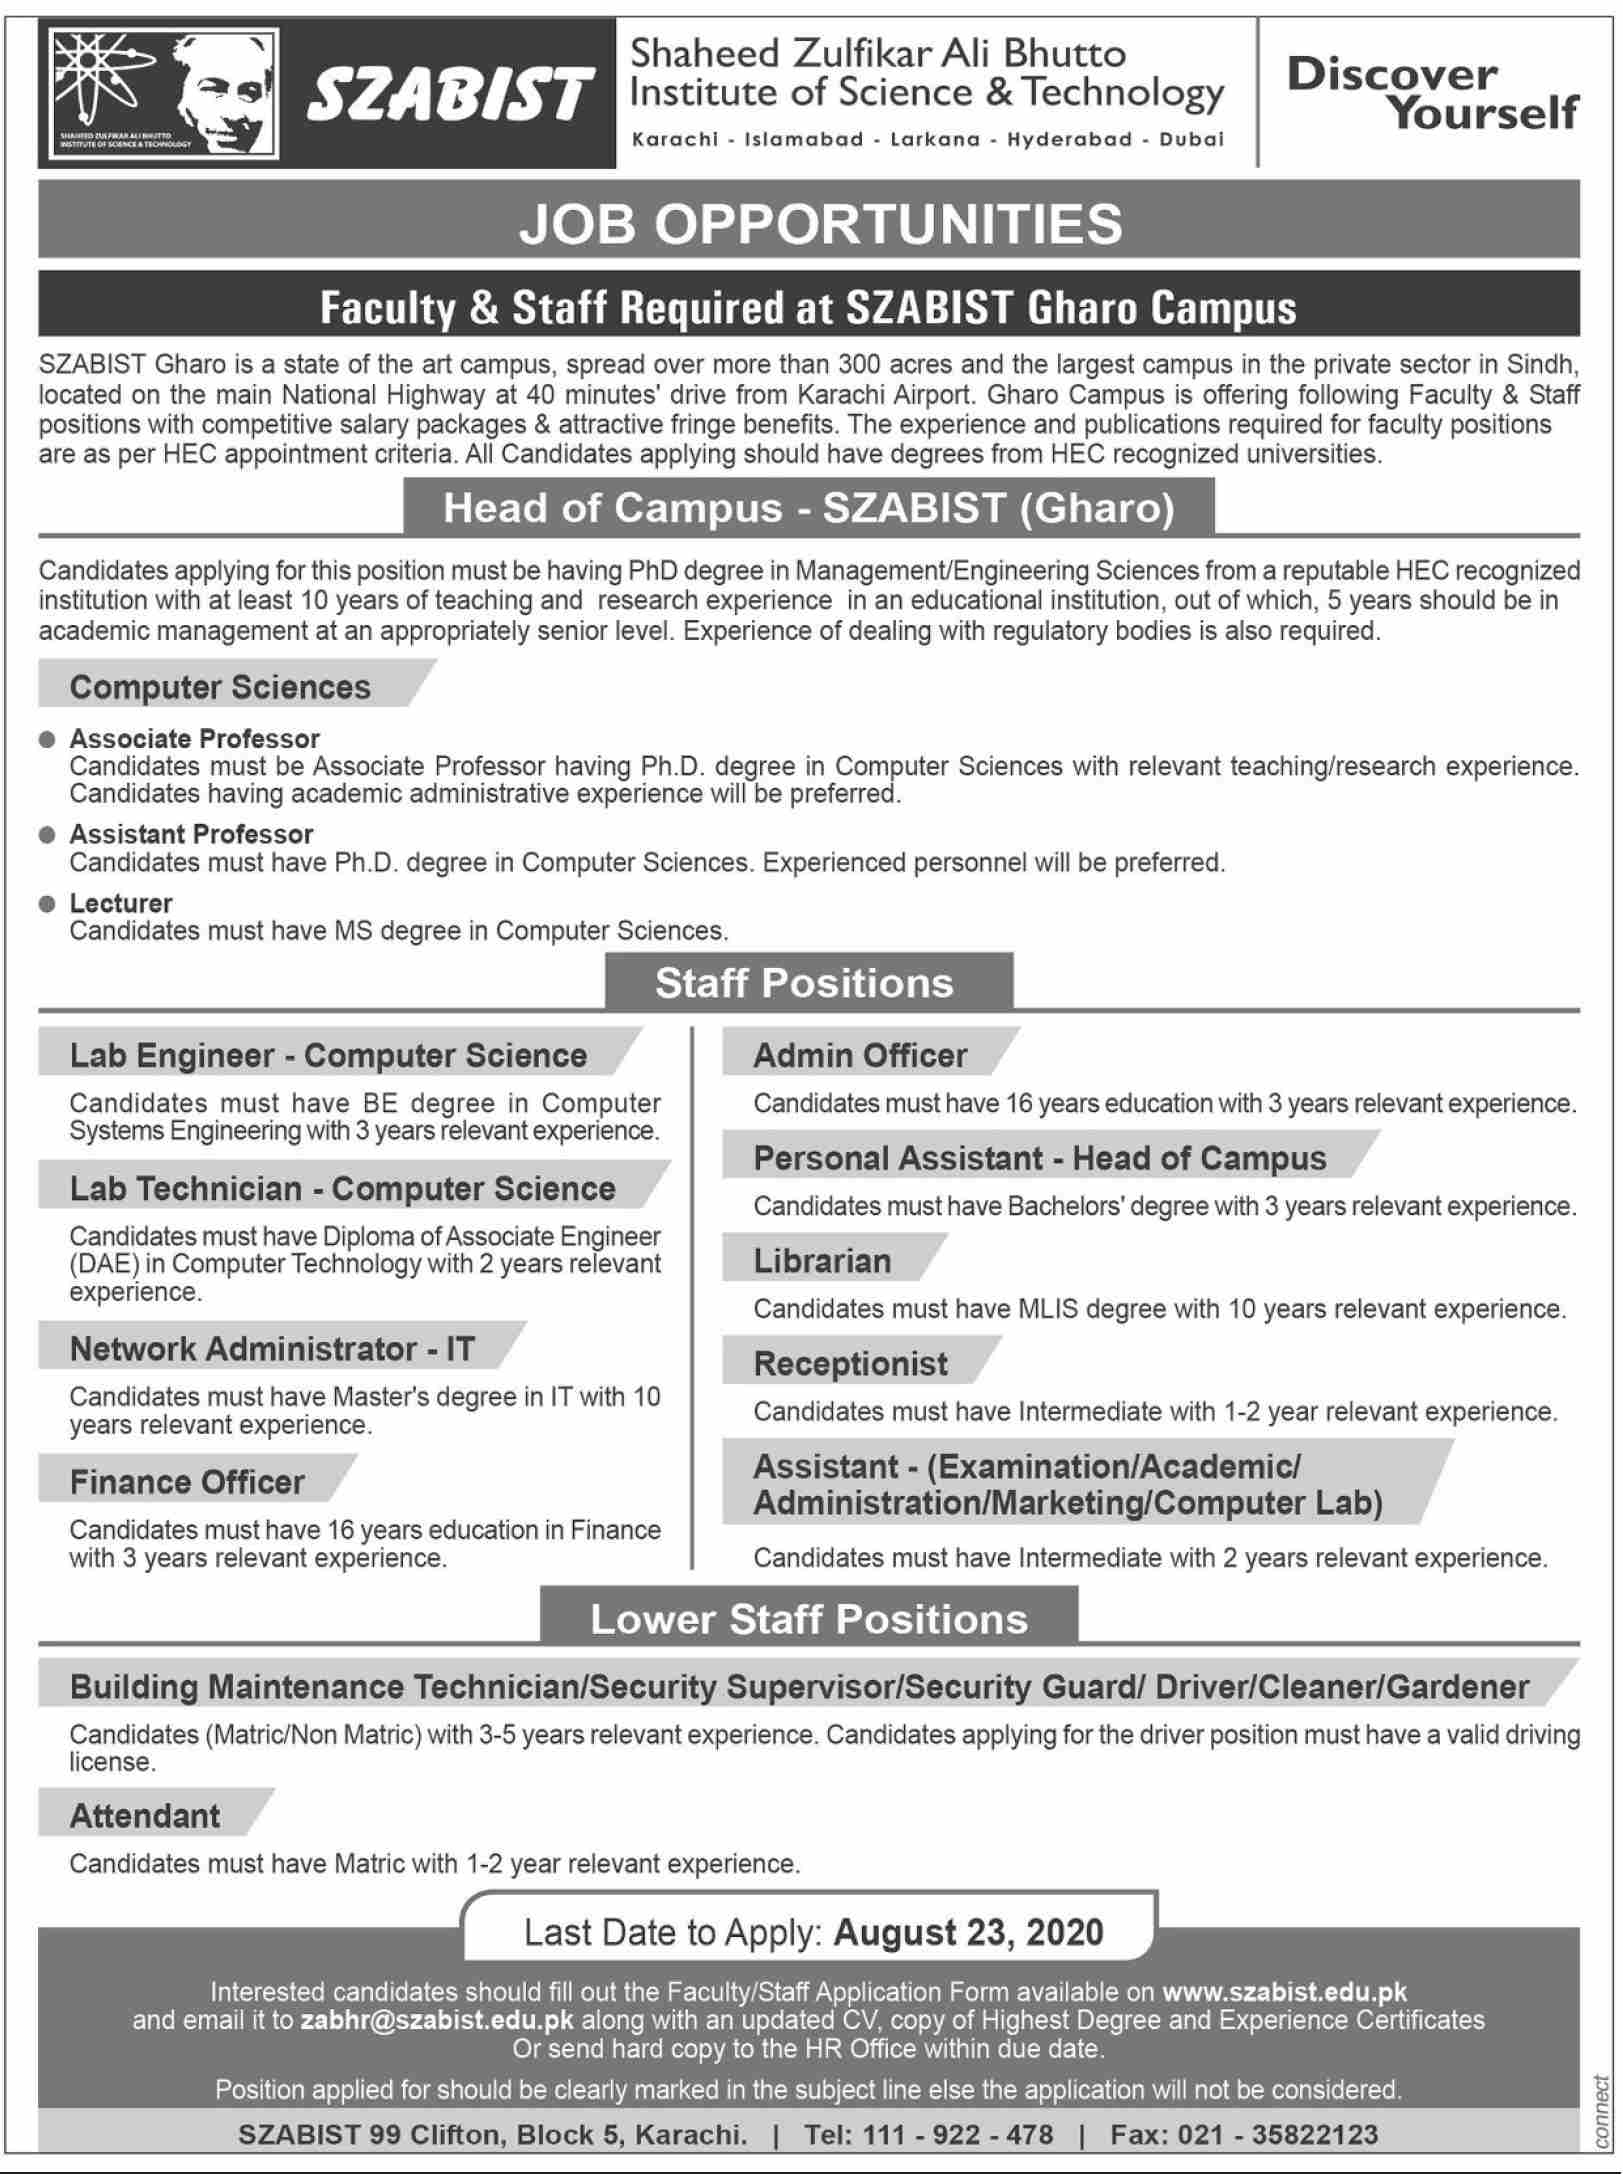 Shaheed Zulfikar Ali Bhutto Institute of Science & Technology Jobs August 2020